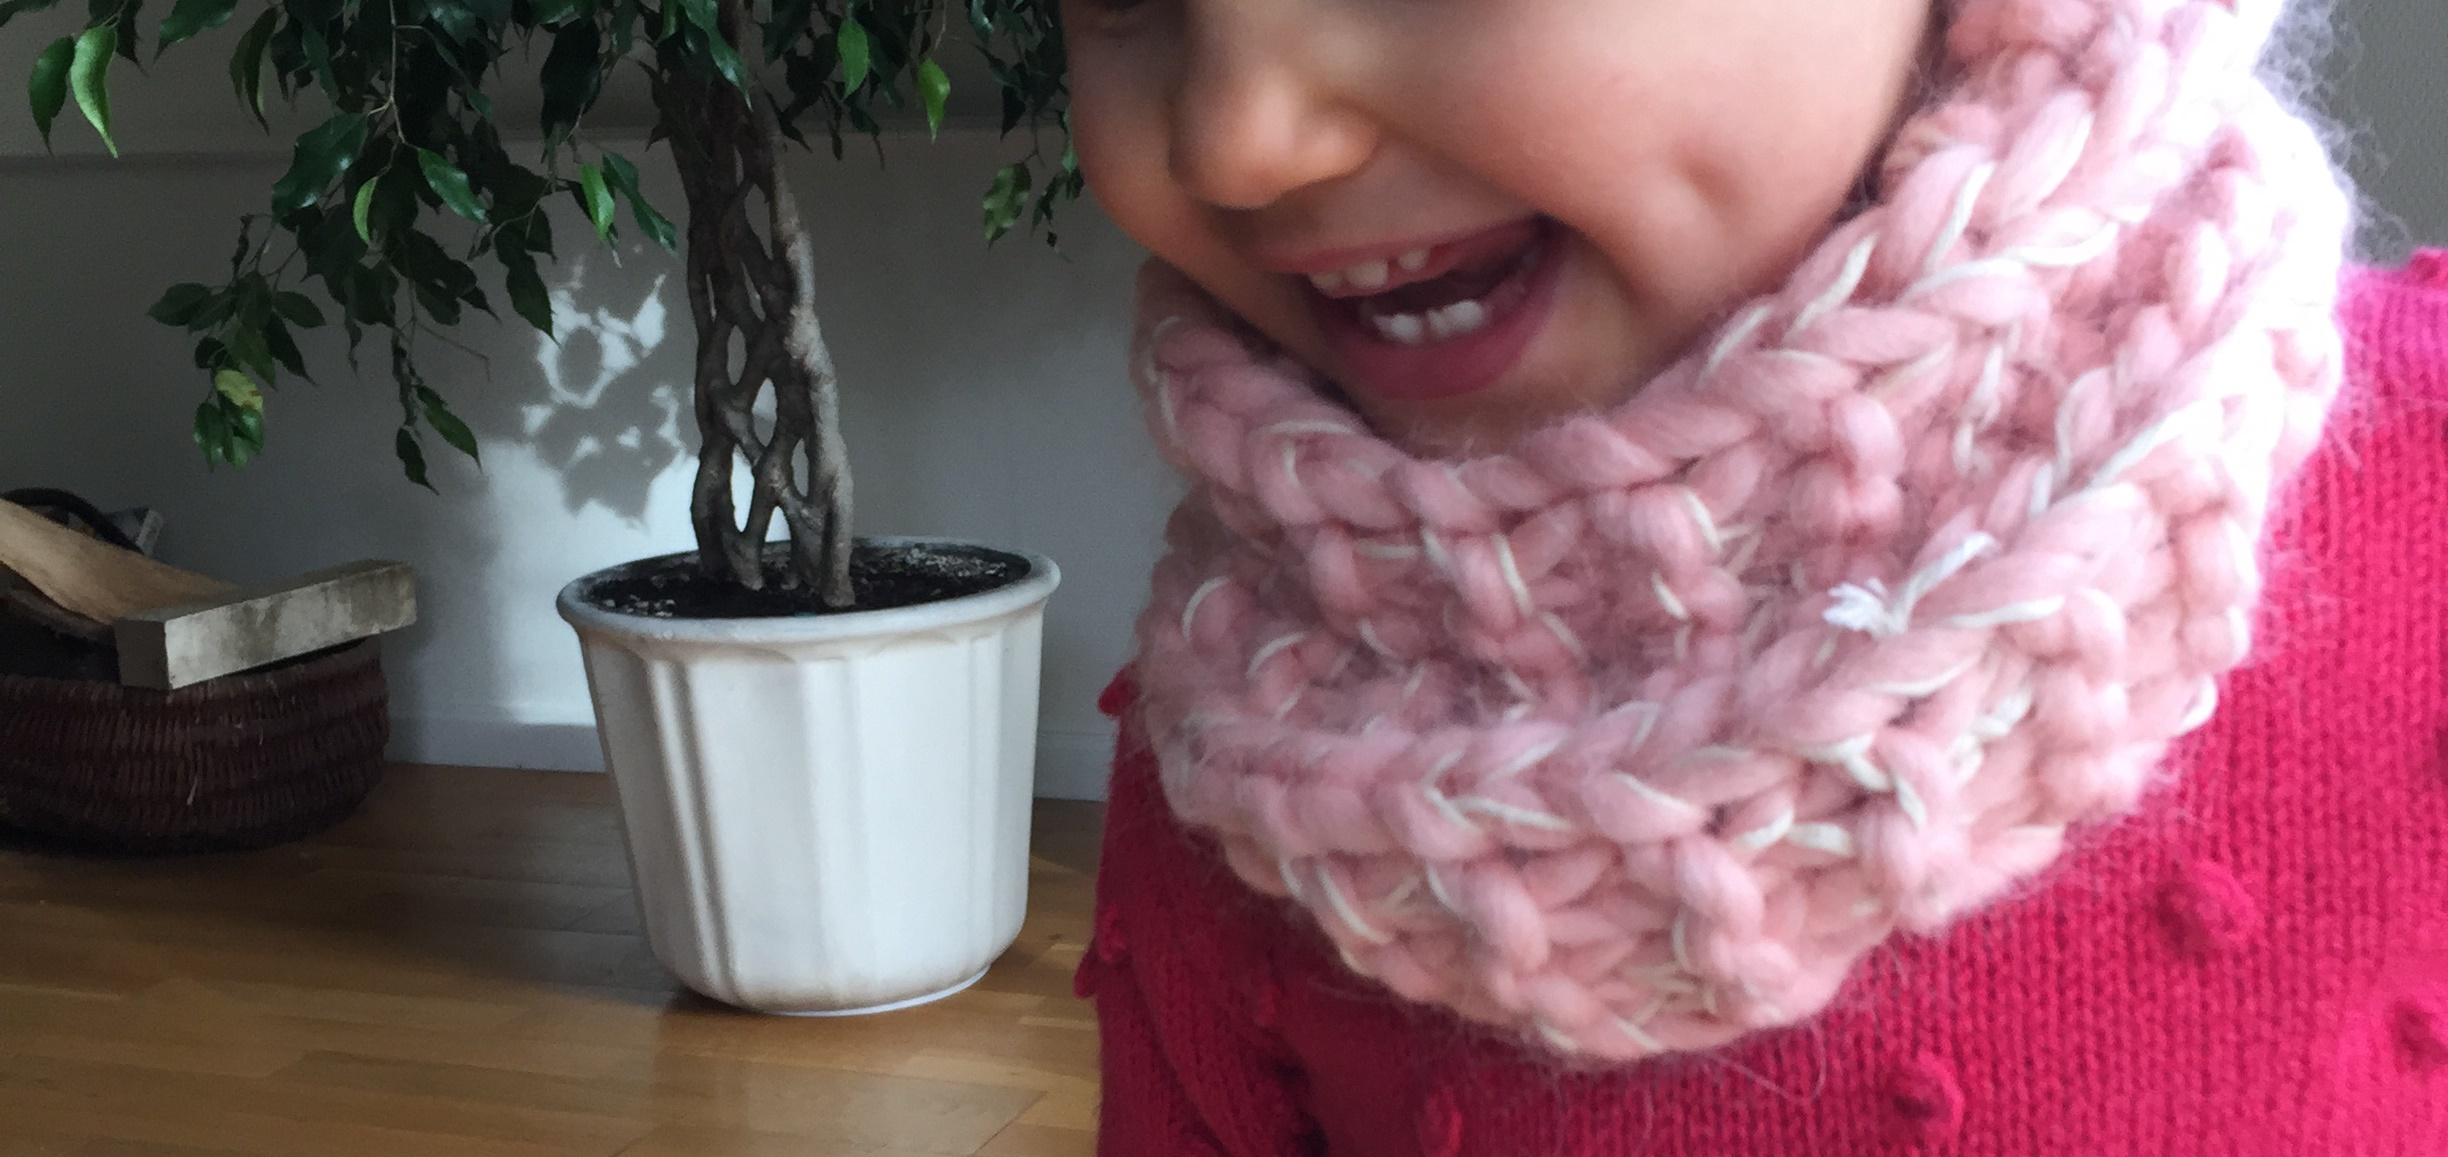 La version mini du snood vanille-fraise